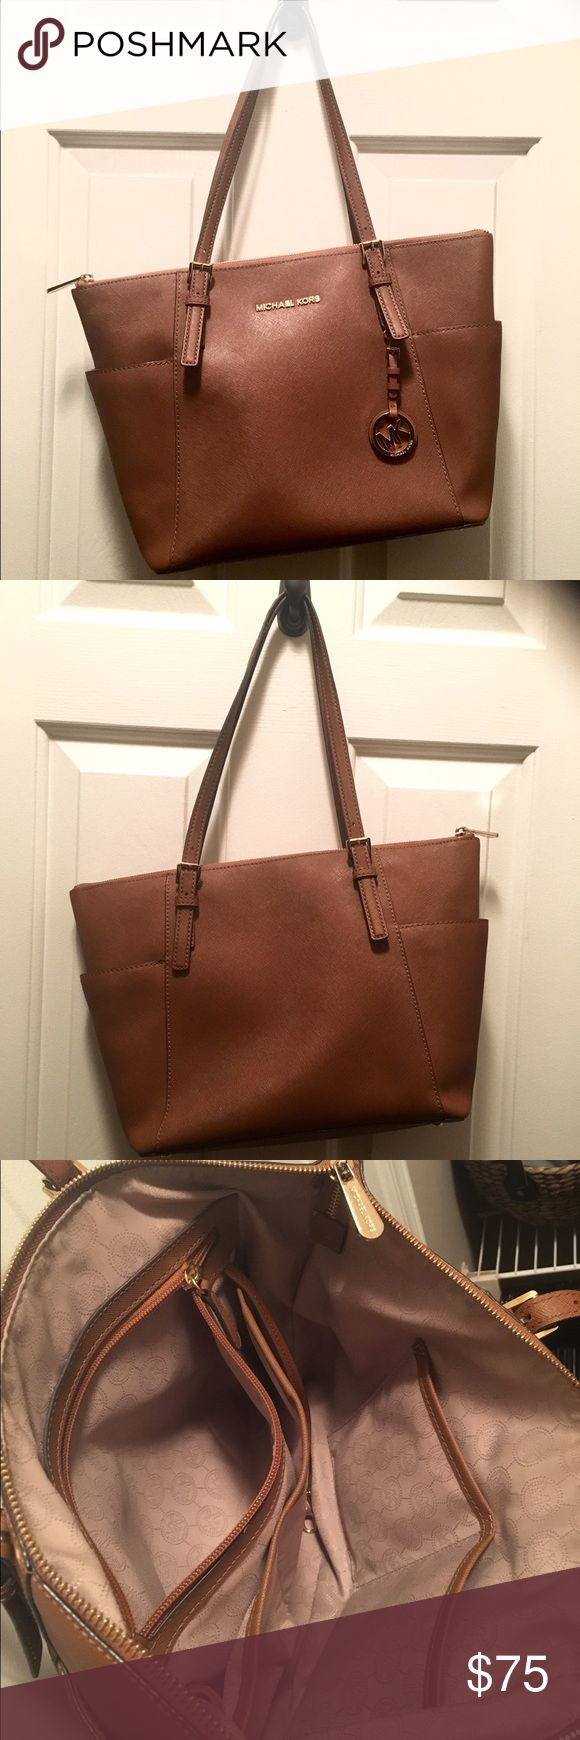 """Michael Kors Jet Set Large Tote """"Luggage"""" Great condition, no tears/scratches/stains. MICHAEL Michael Kors Bags Totes"""